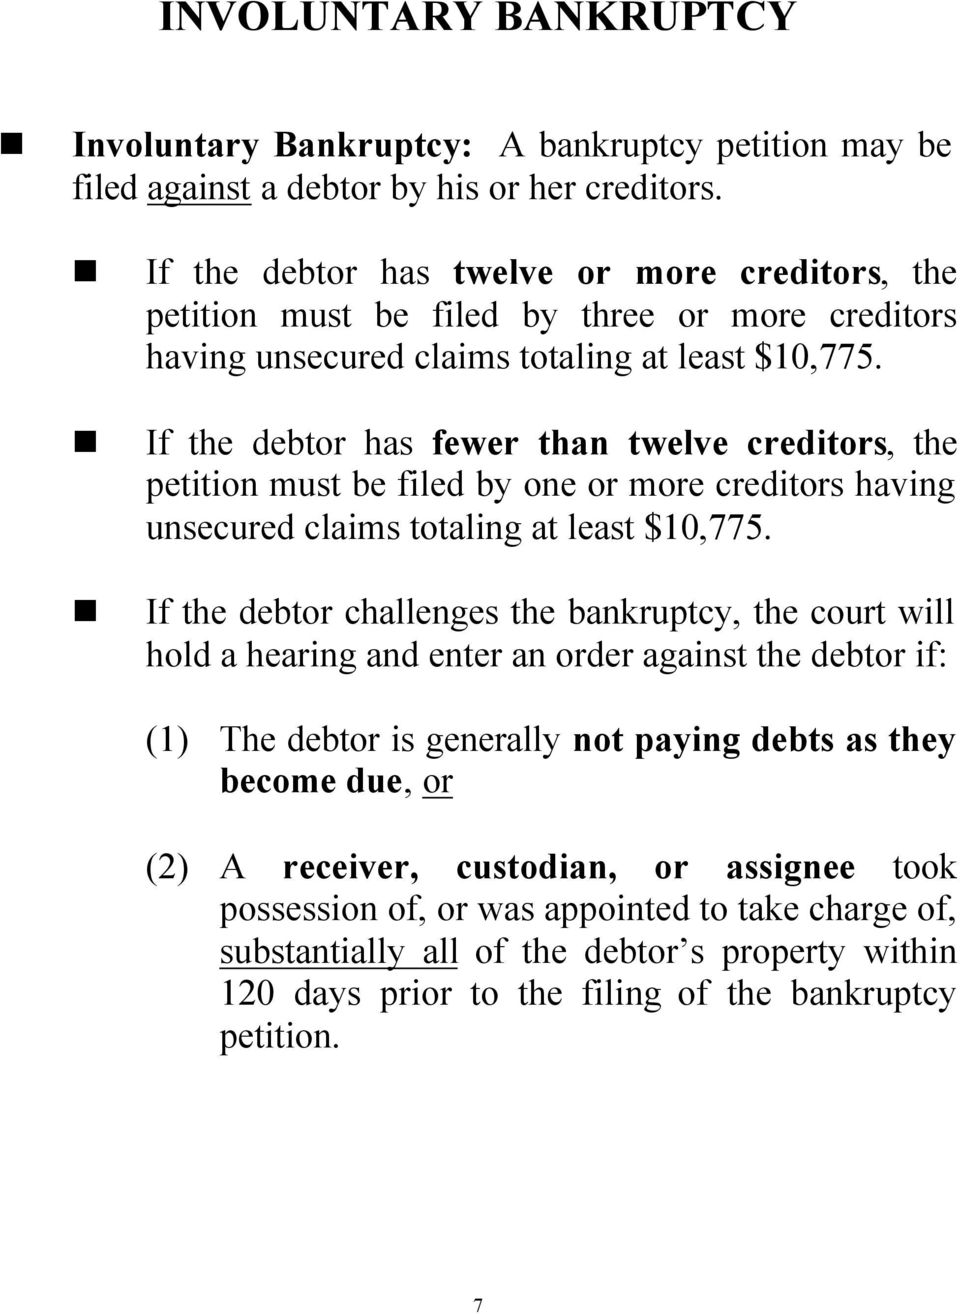 If the debtor has fewer than twelve creditors, the petition must be filed by one or more creditors having unsecured claims totaling at least $10,775.